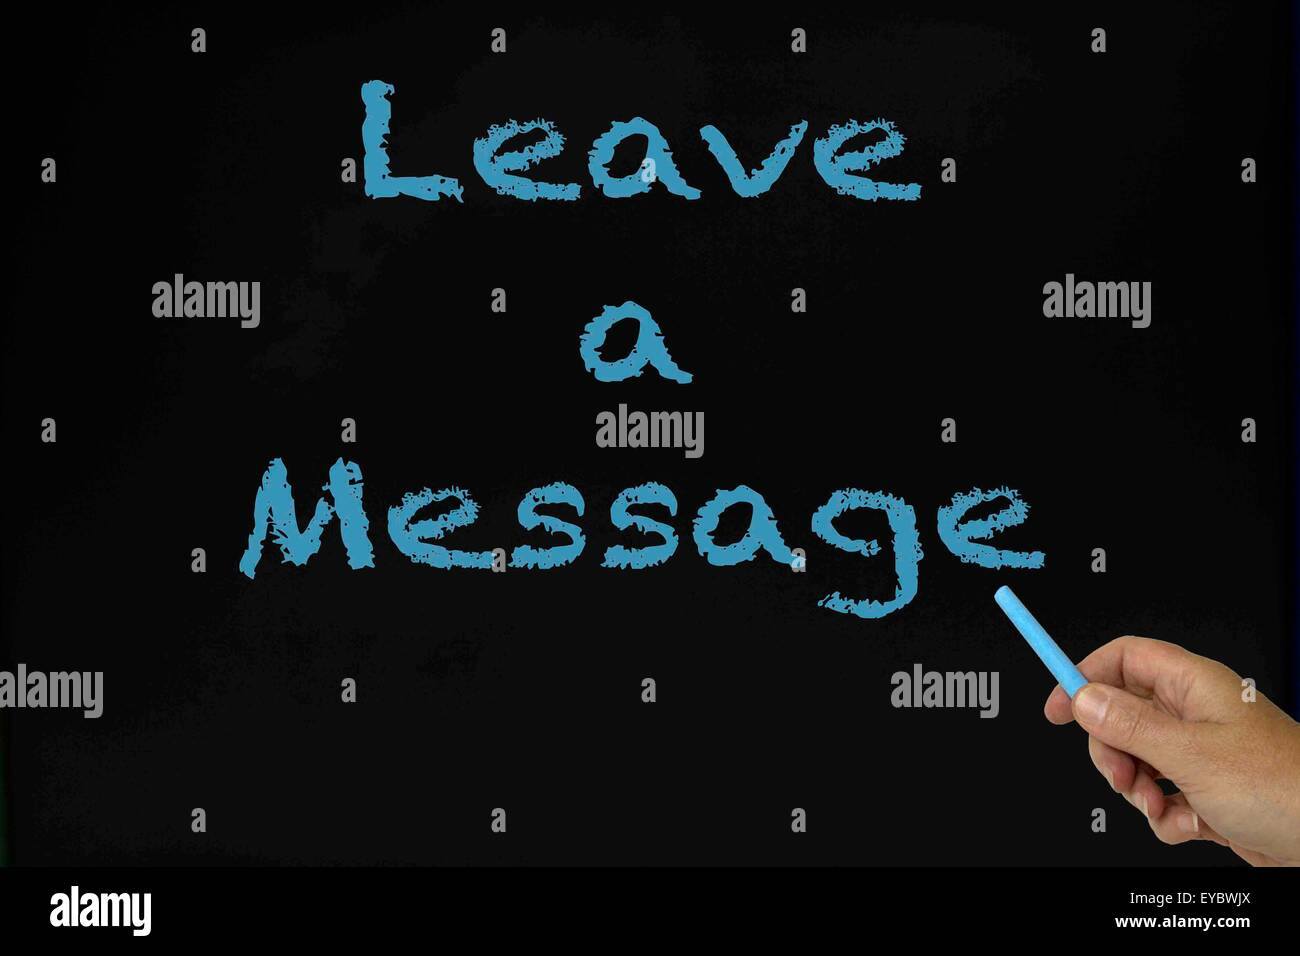 Leave a message written on chalkboard in blue with woman's hand holding the piece of chalk. - Stock Image